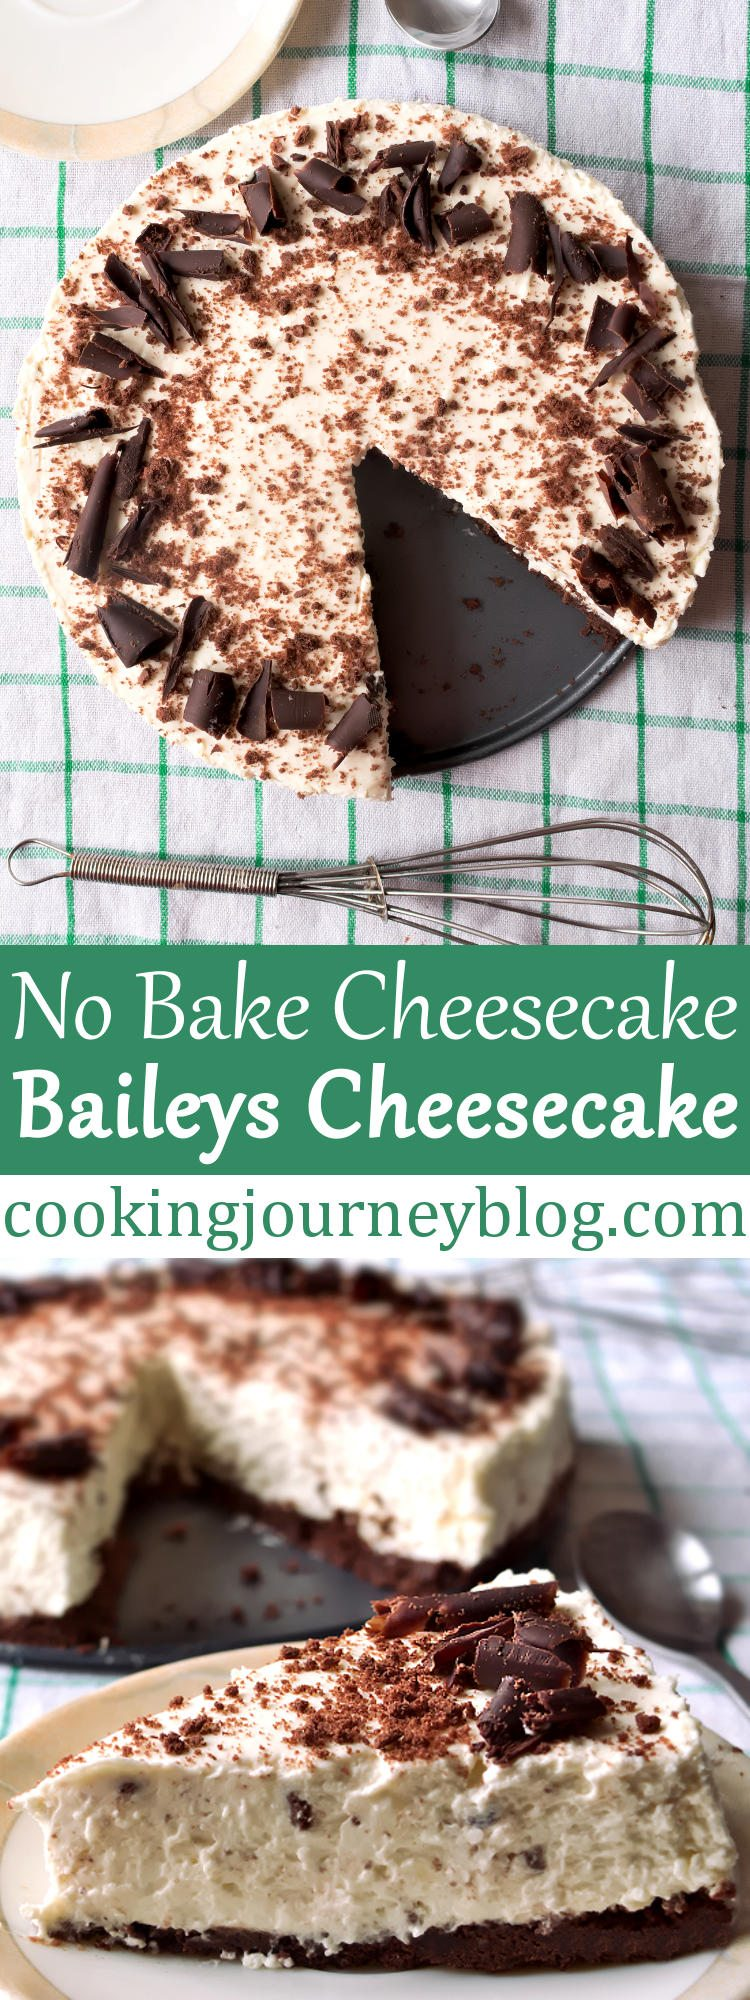 Baileys cheesecake – Irish desserts – No bake cheesecake